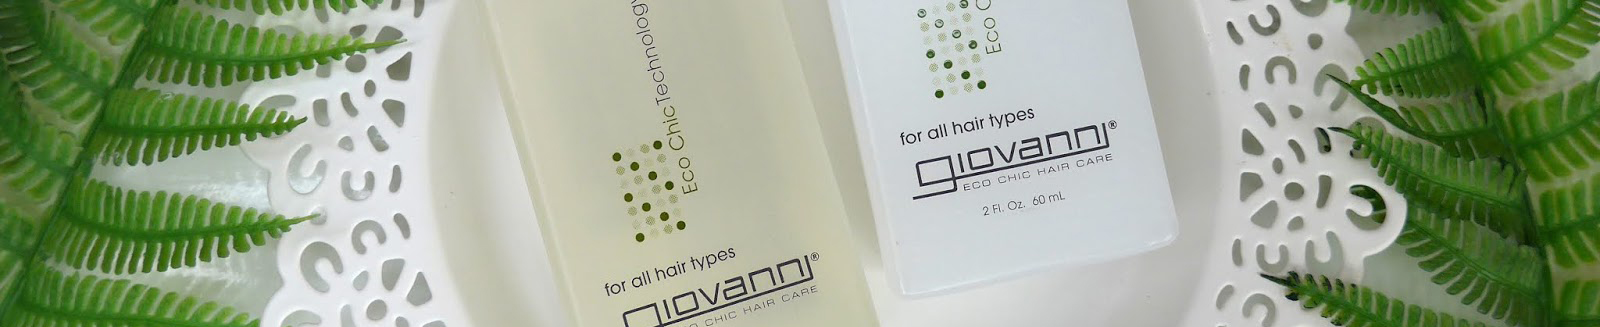 Giovanni Cosmetics